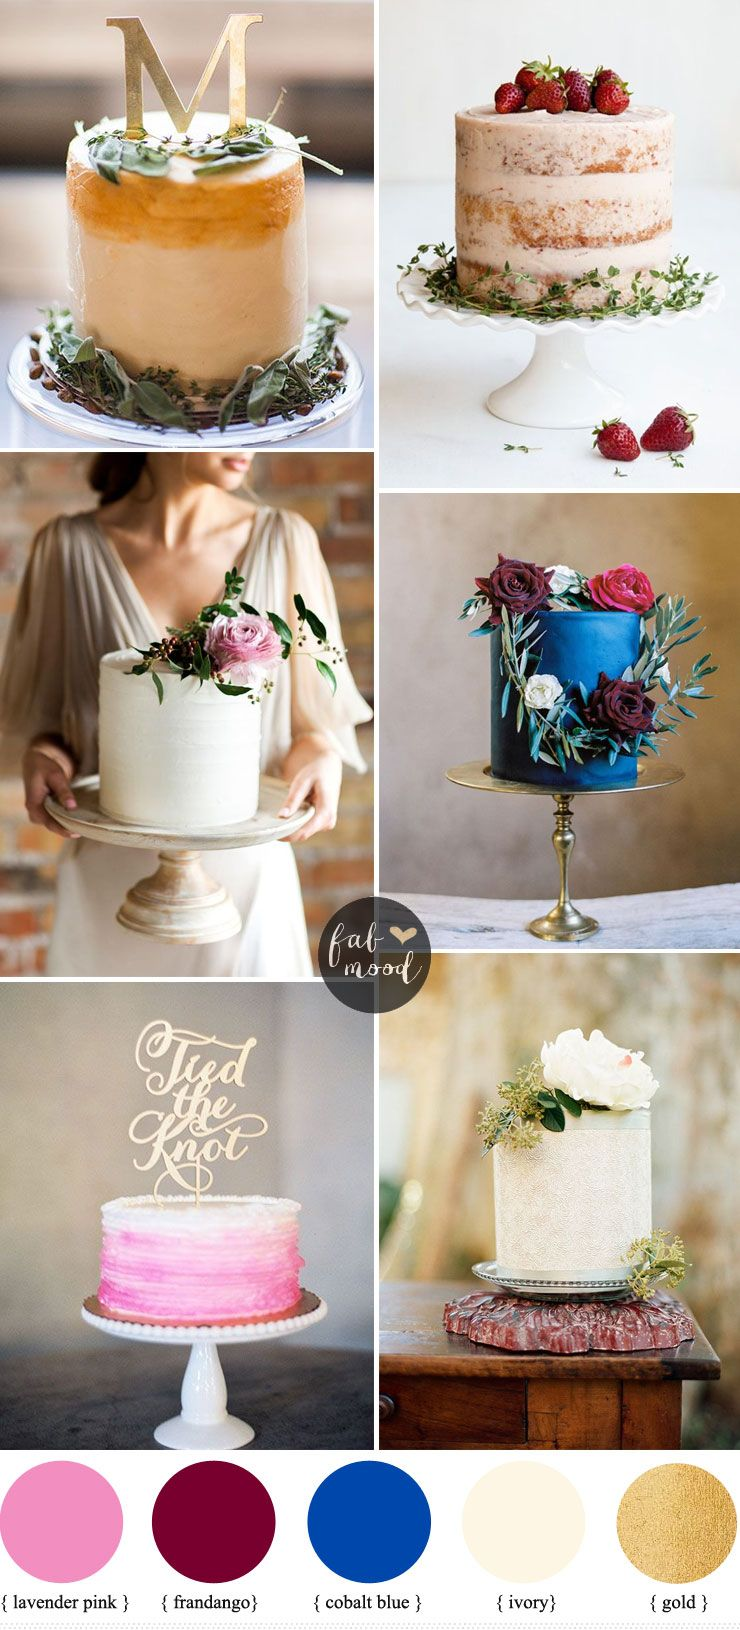 one tier wedding cakes will have your guestsu mouths watering